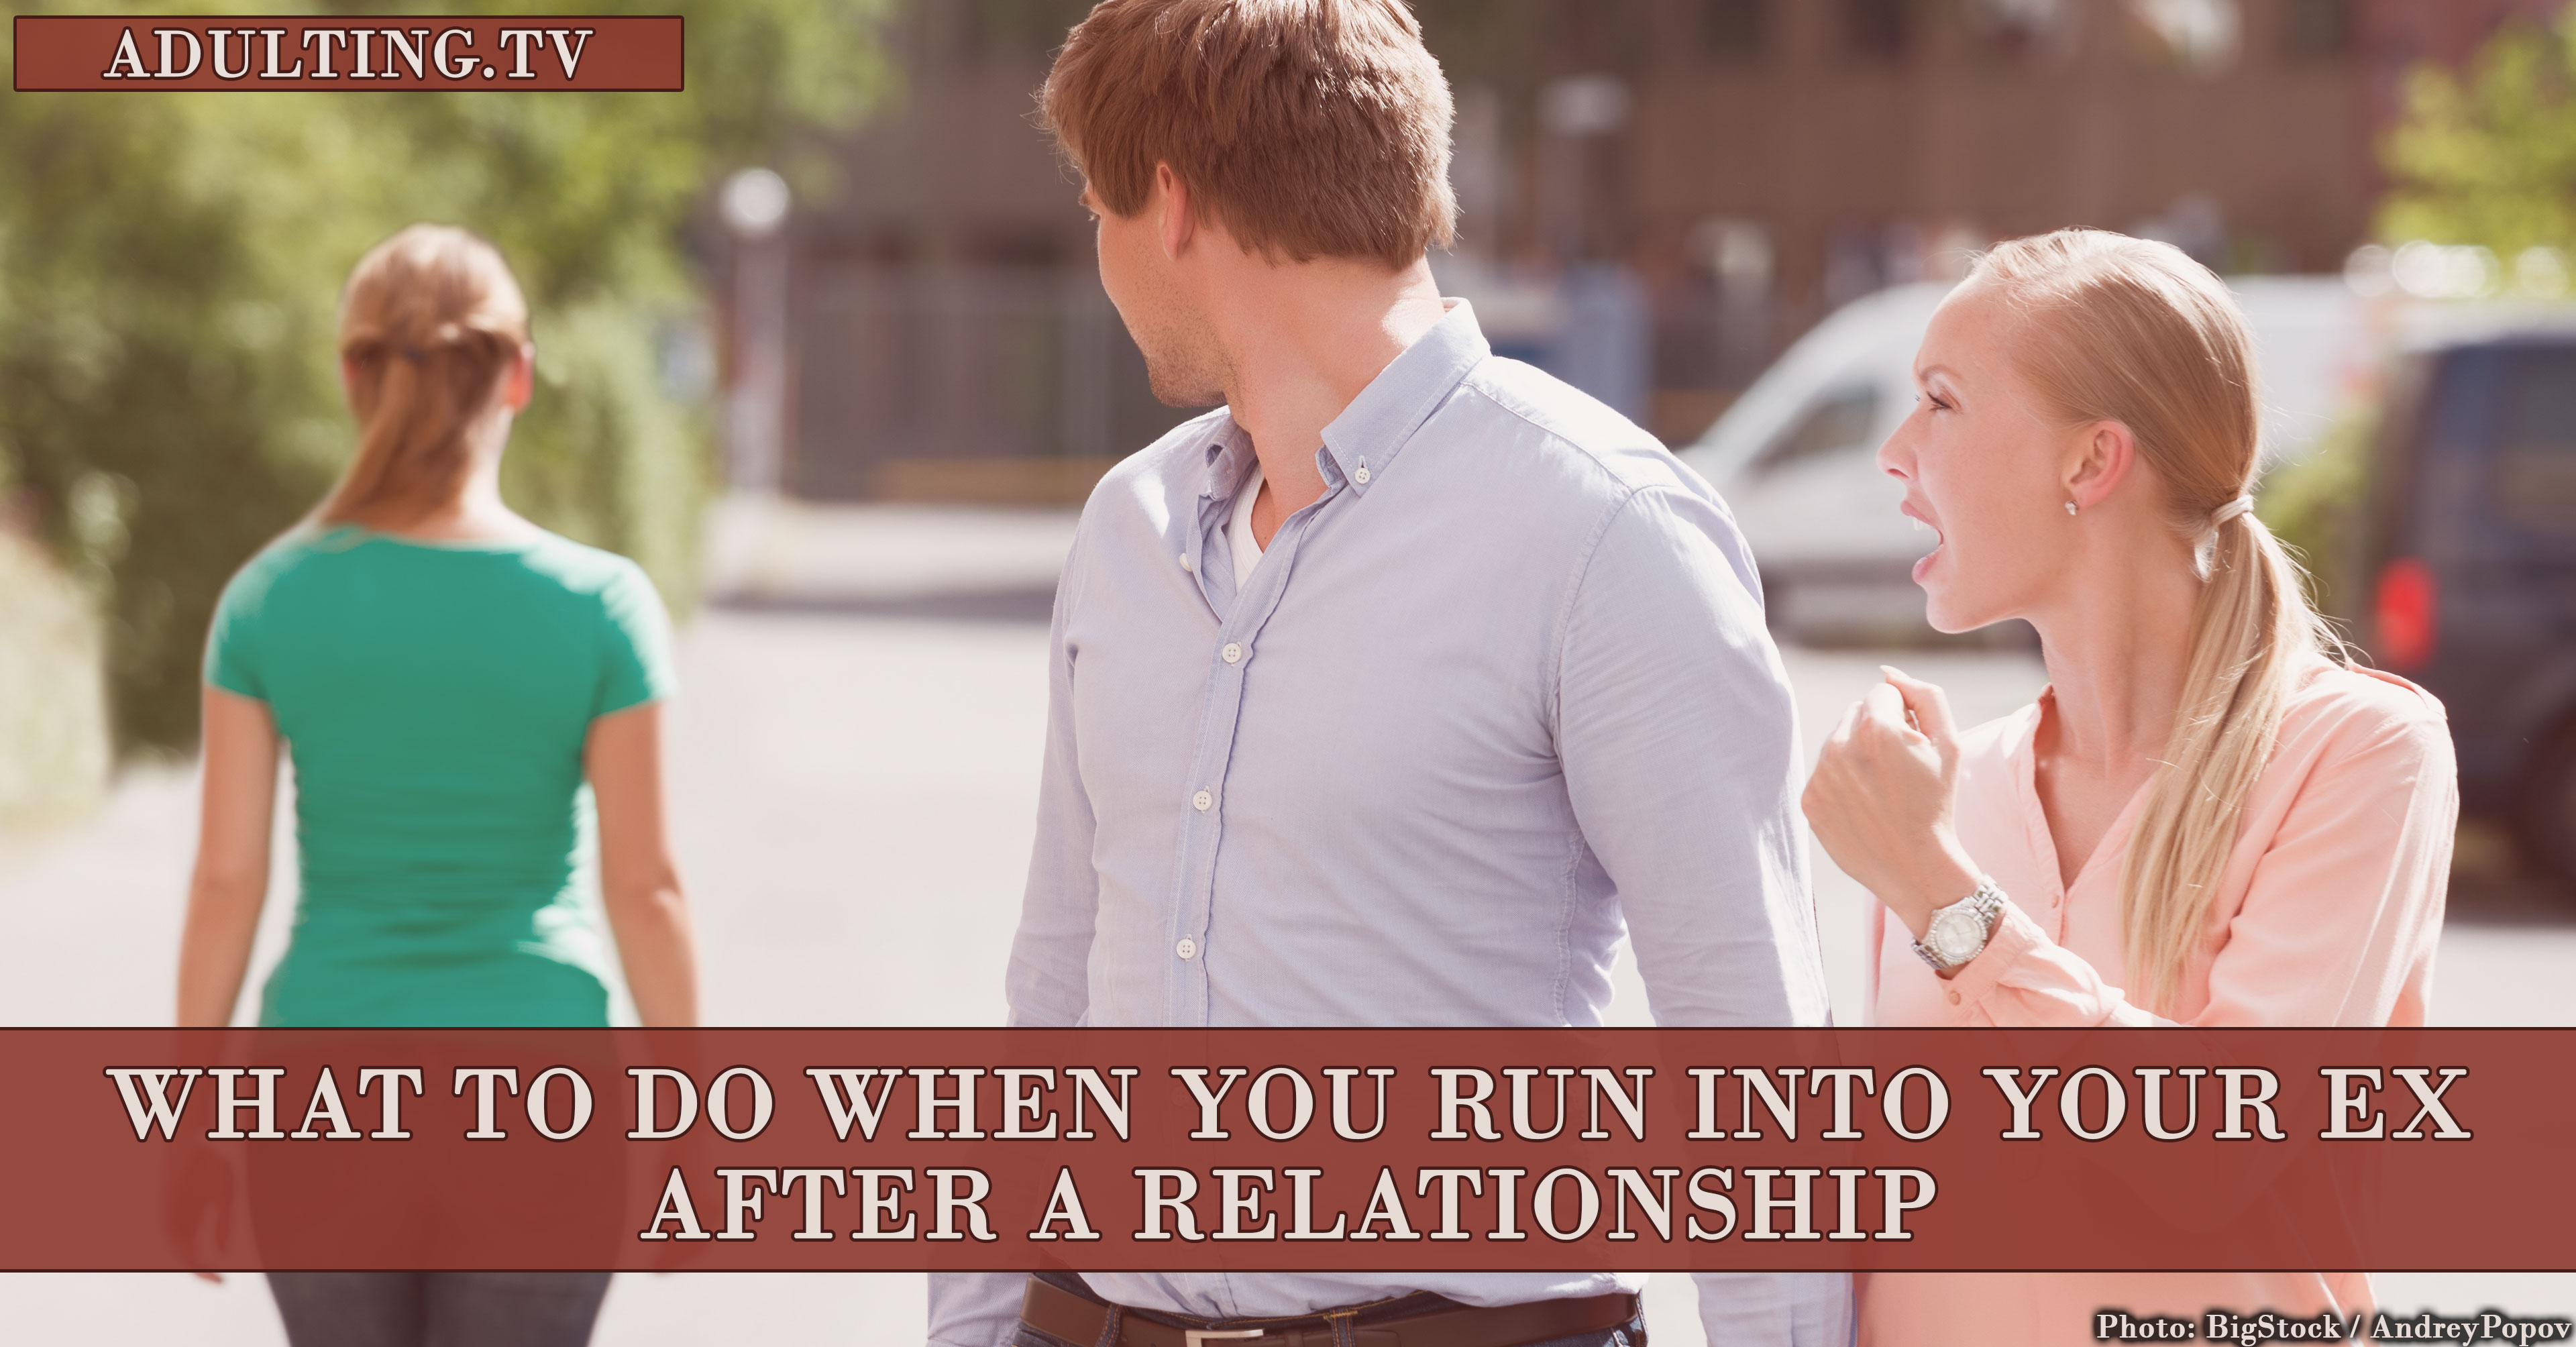 What To Do When You Run Into Your Ex After a Relationship | Adulting